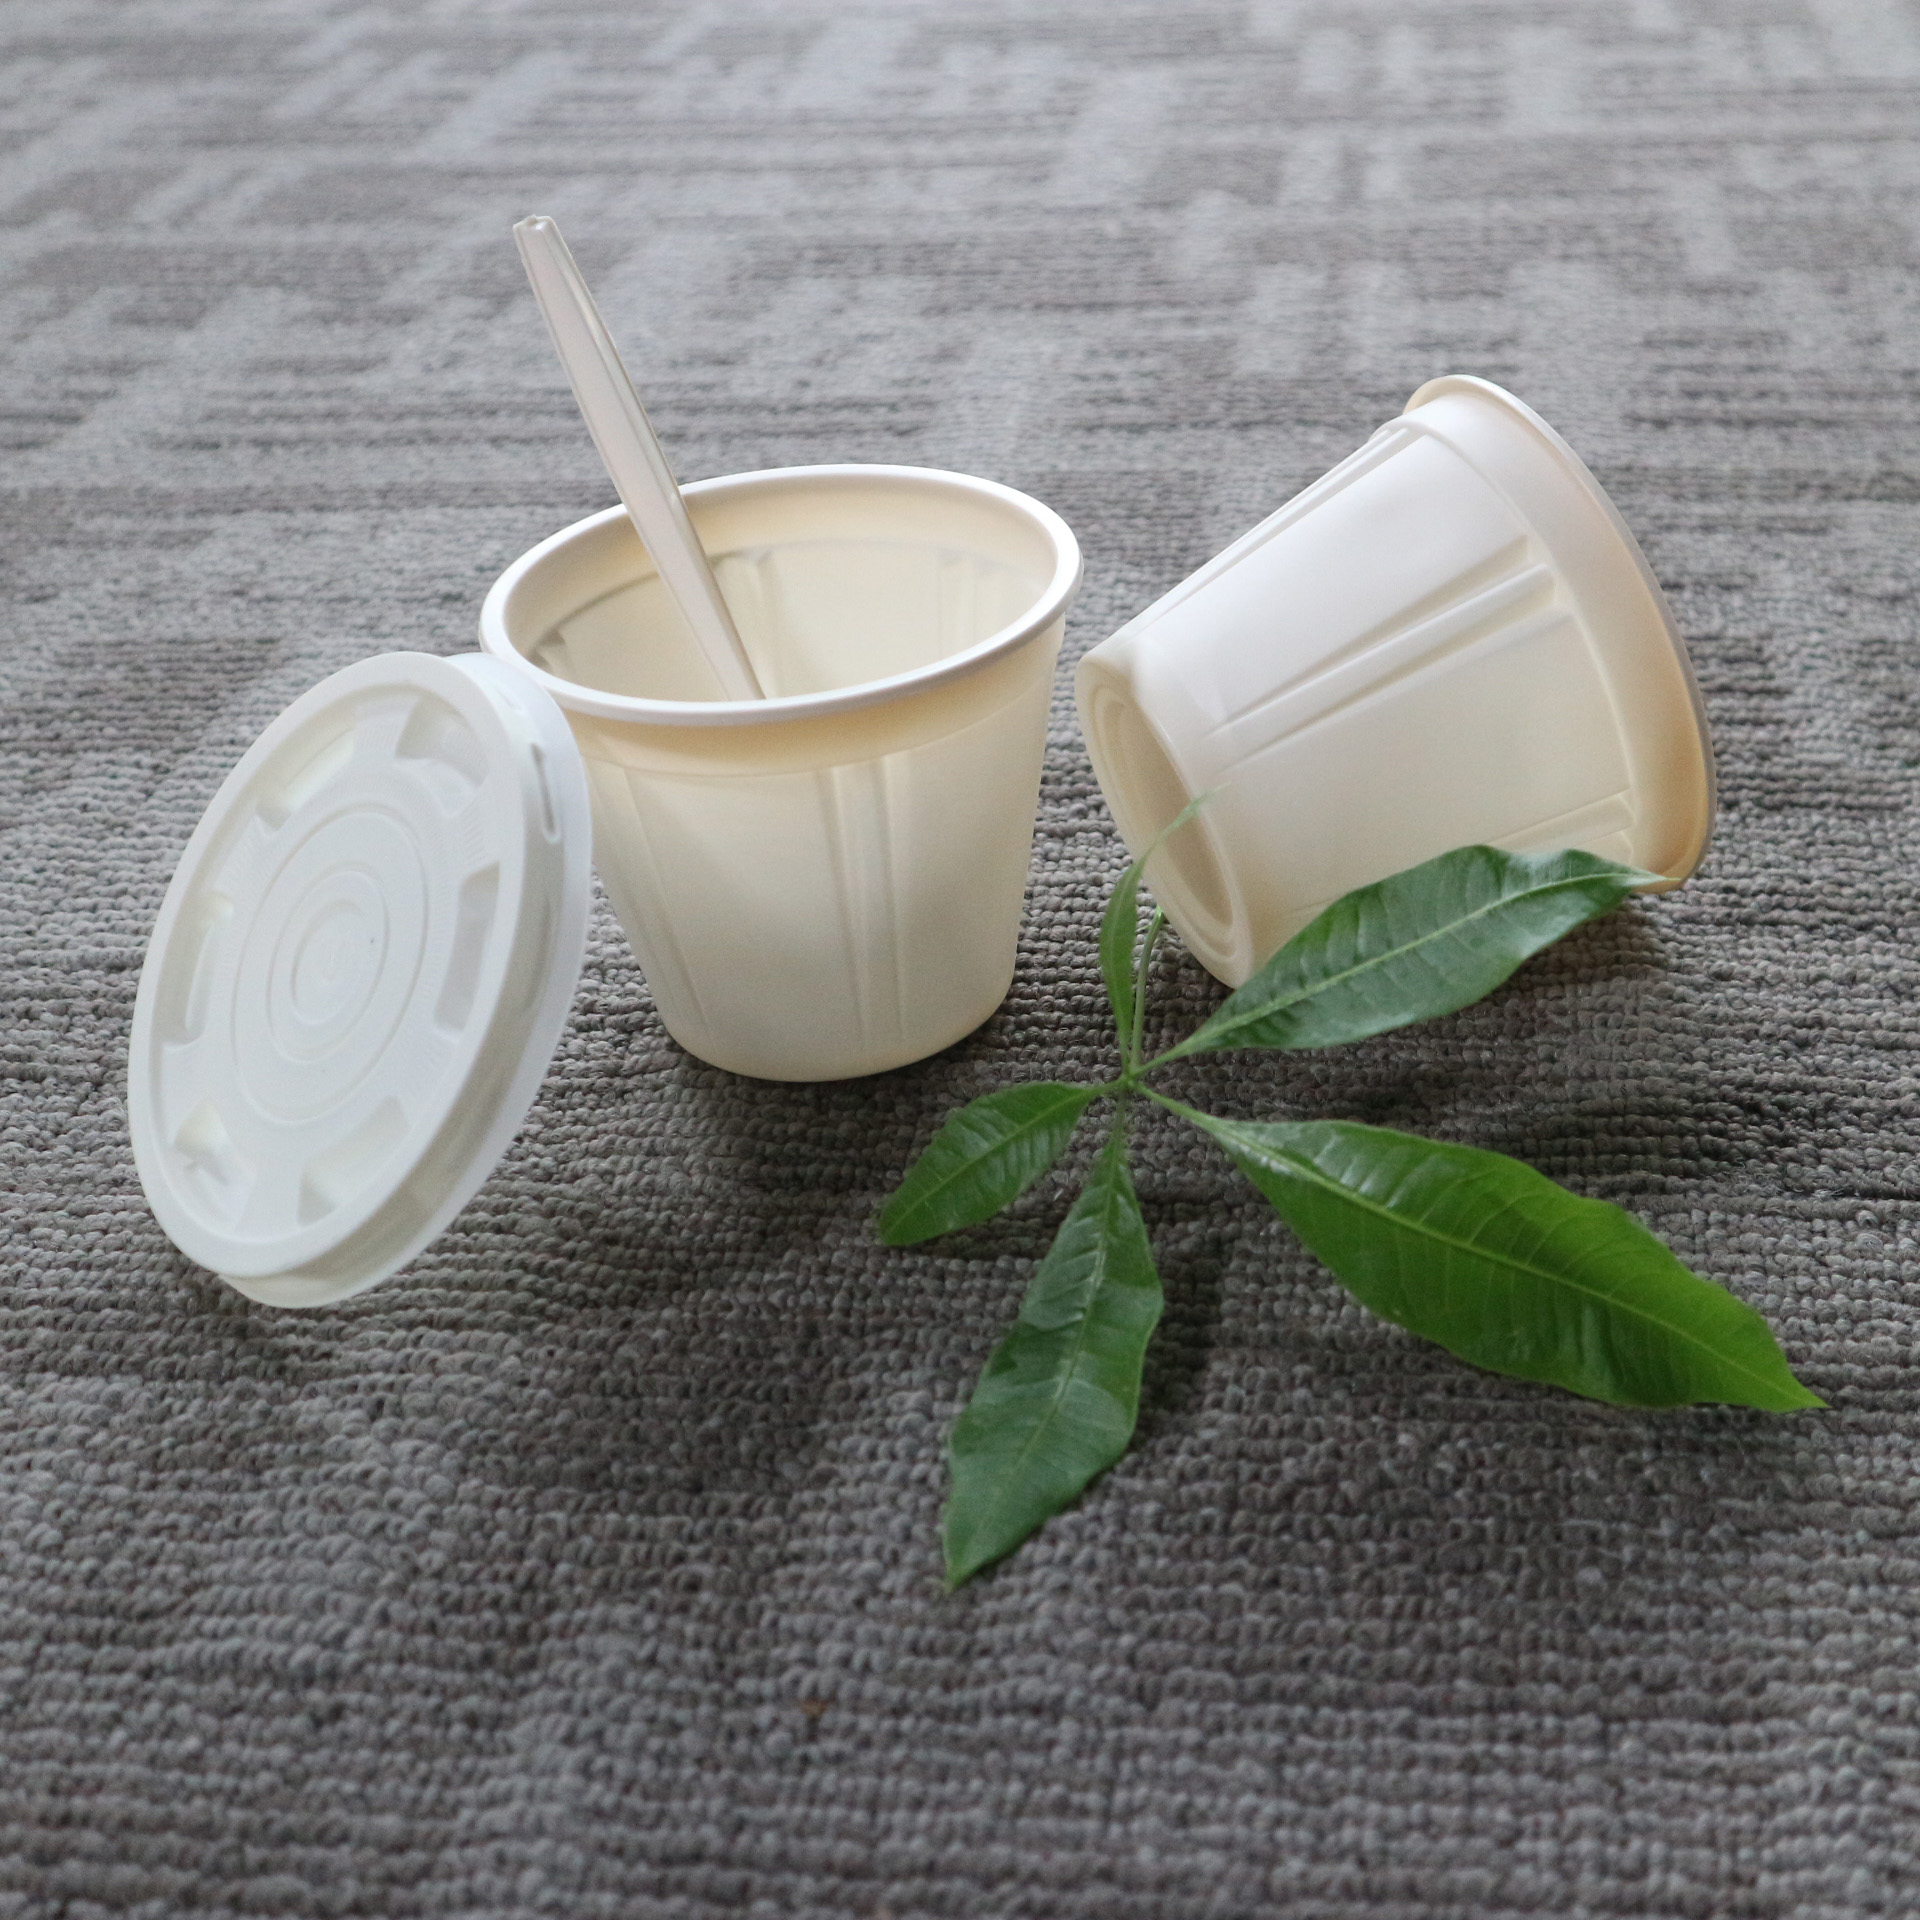 Biodegradable Food Container Cornstarch Disposable Soup Bowls with Lids